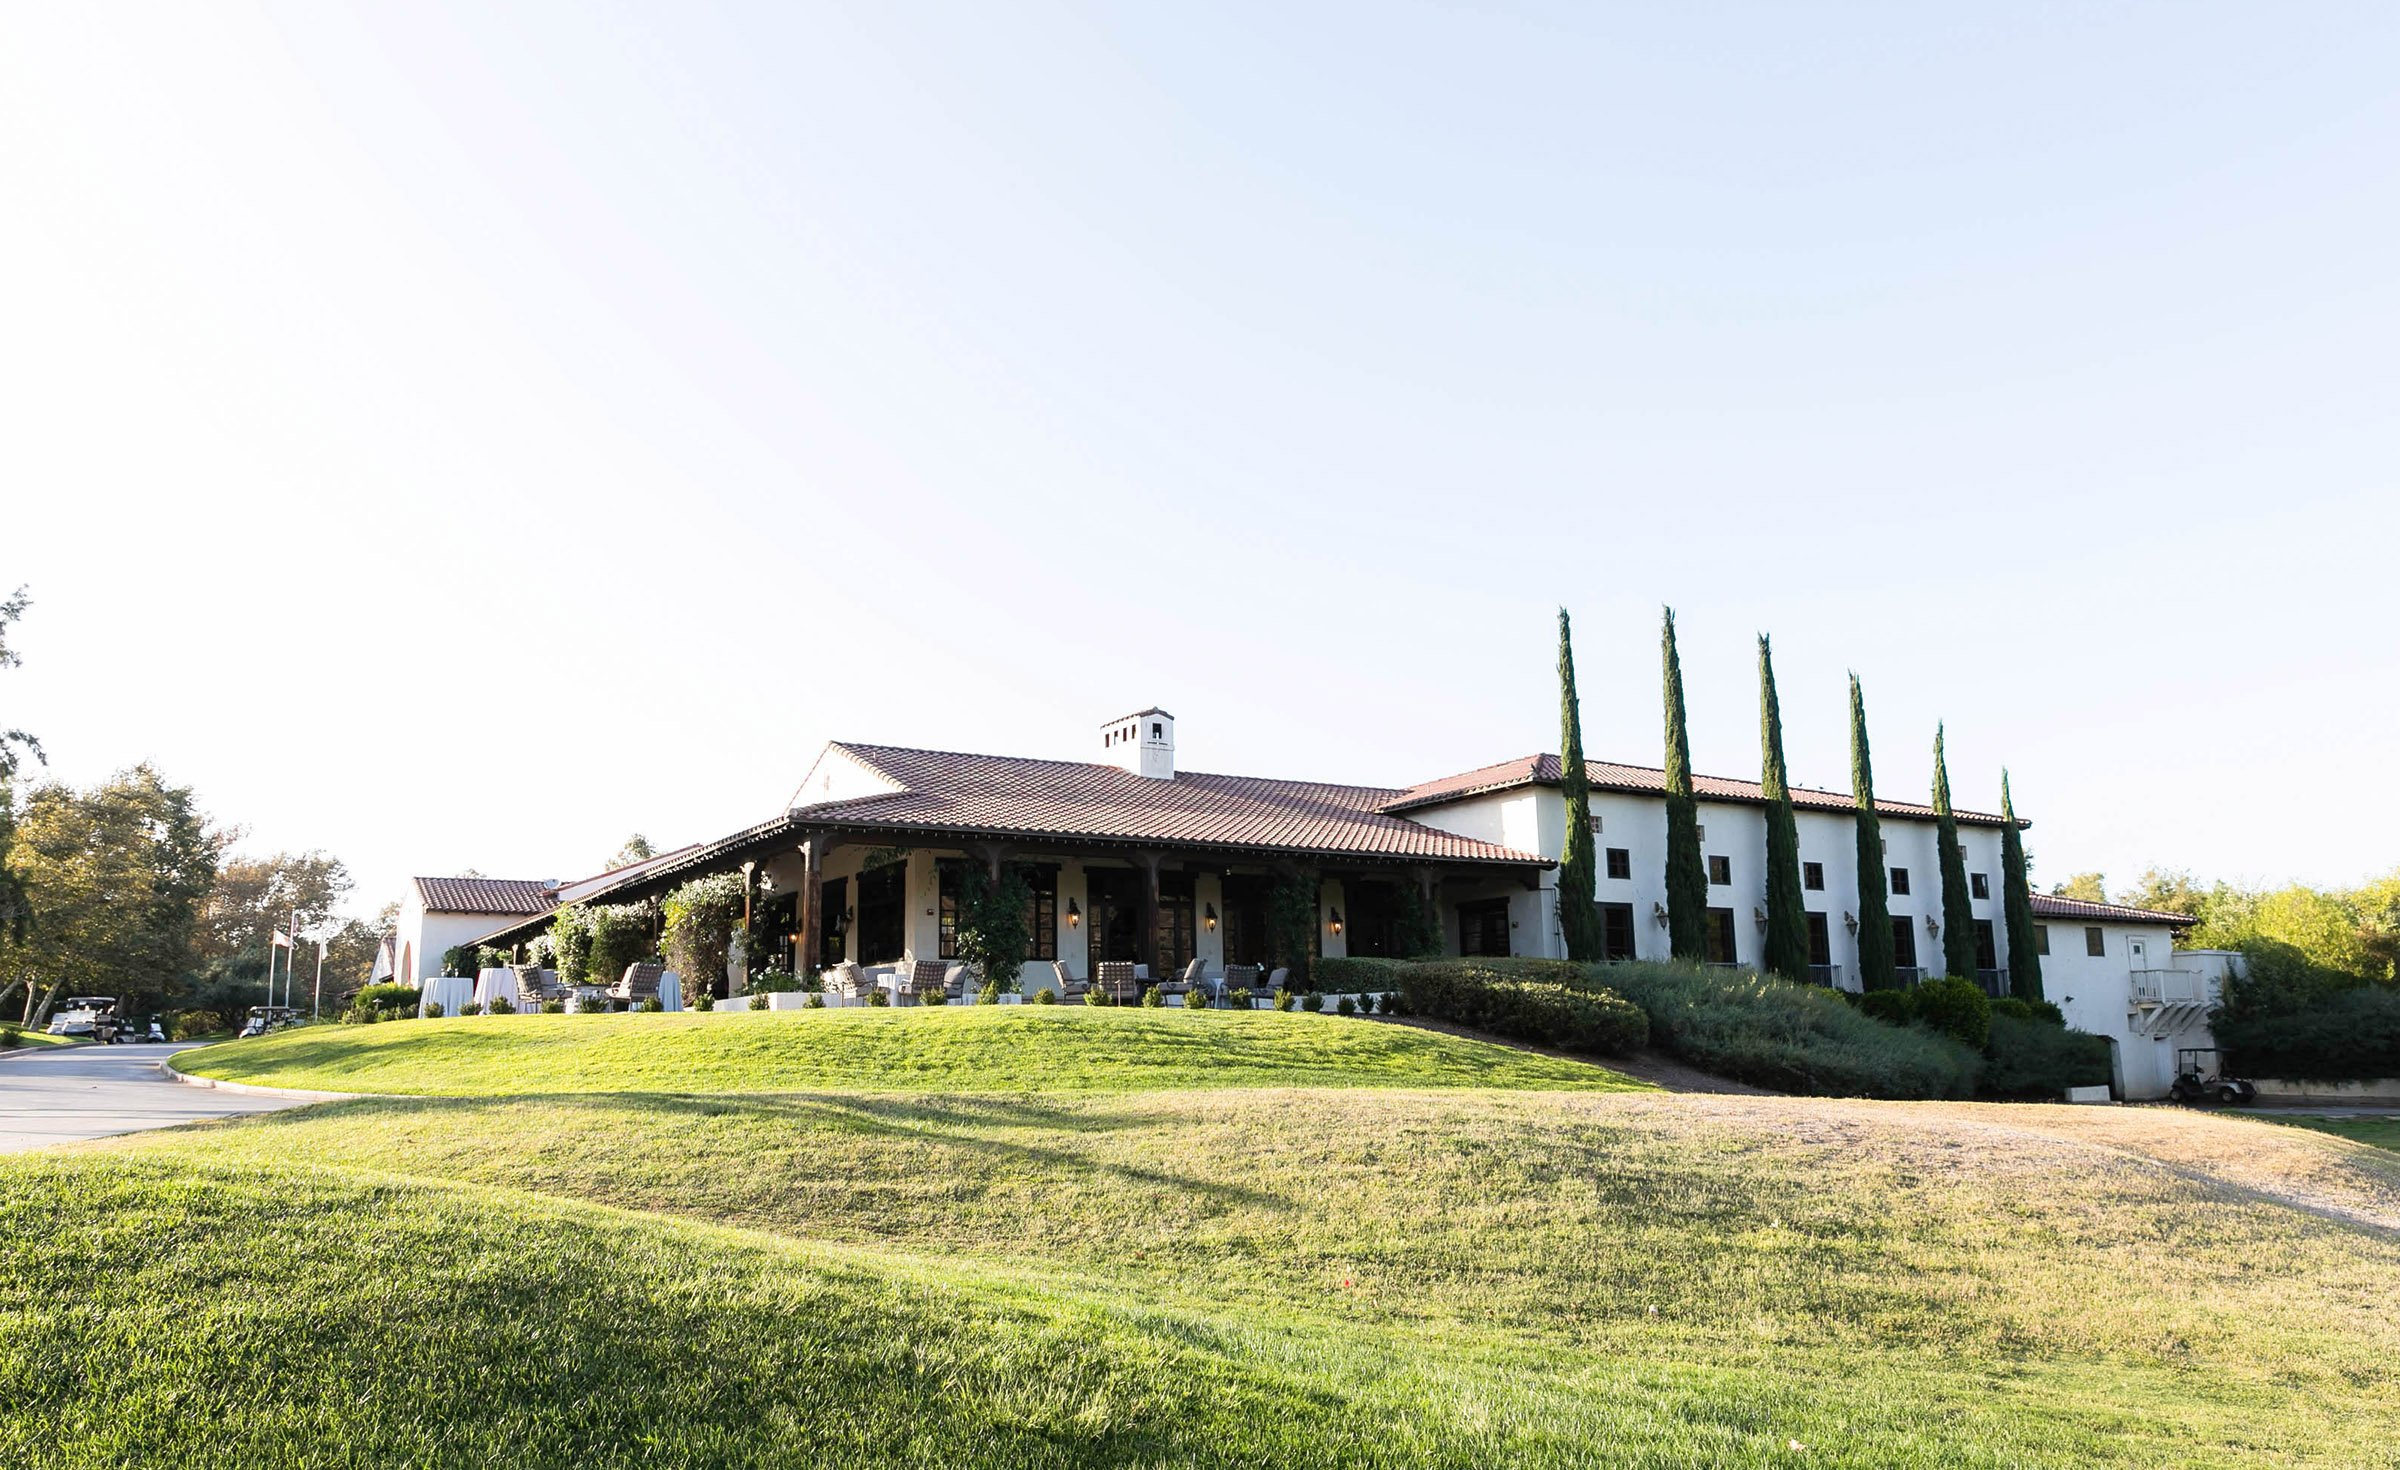 From a distance - Fallbrook - Fallbrook, California - San Diego County - Wedgewood Weddings